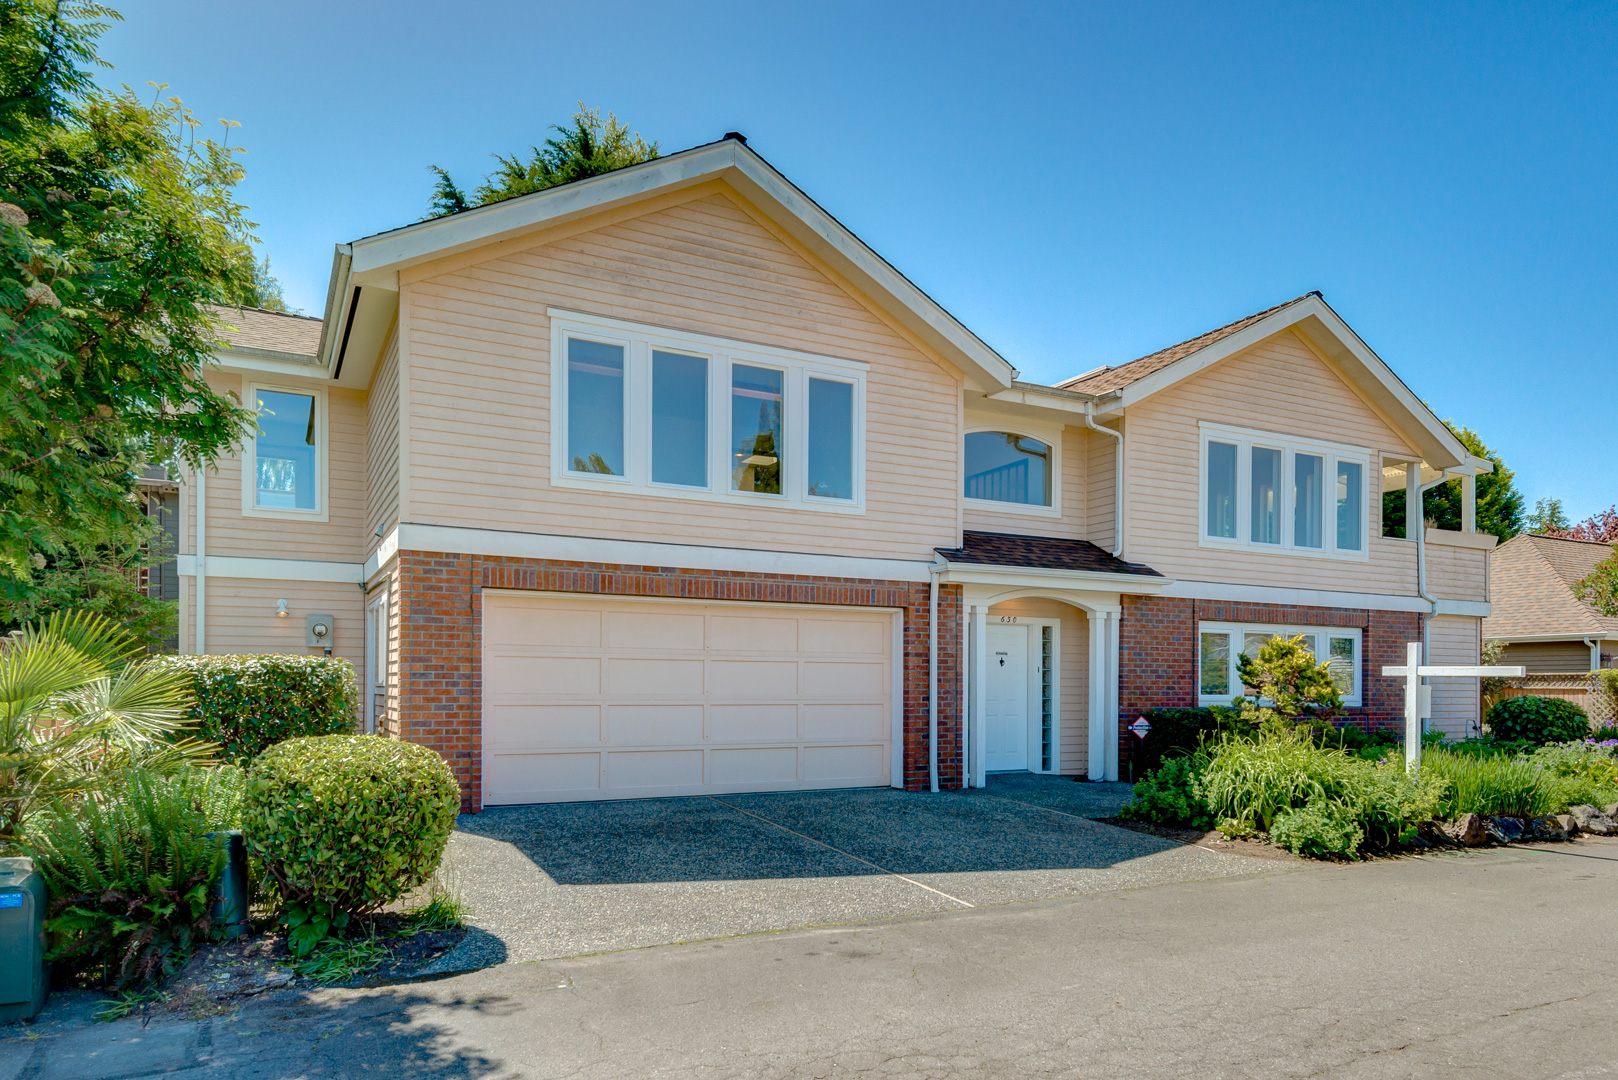 Single Family Home for Sale at Edmonds Bowl Estate 630 Giltner Lane Edmonds, Washington 98020 United States